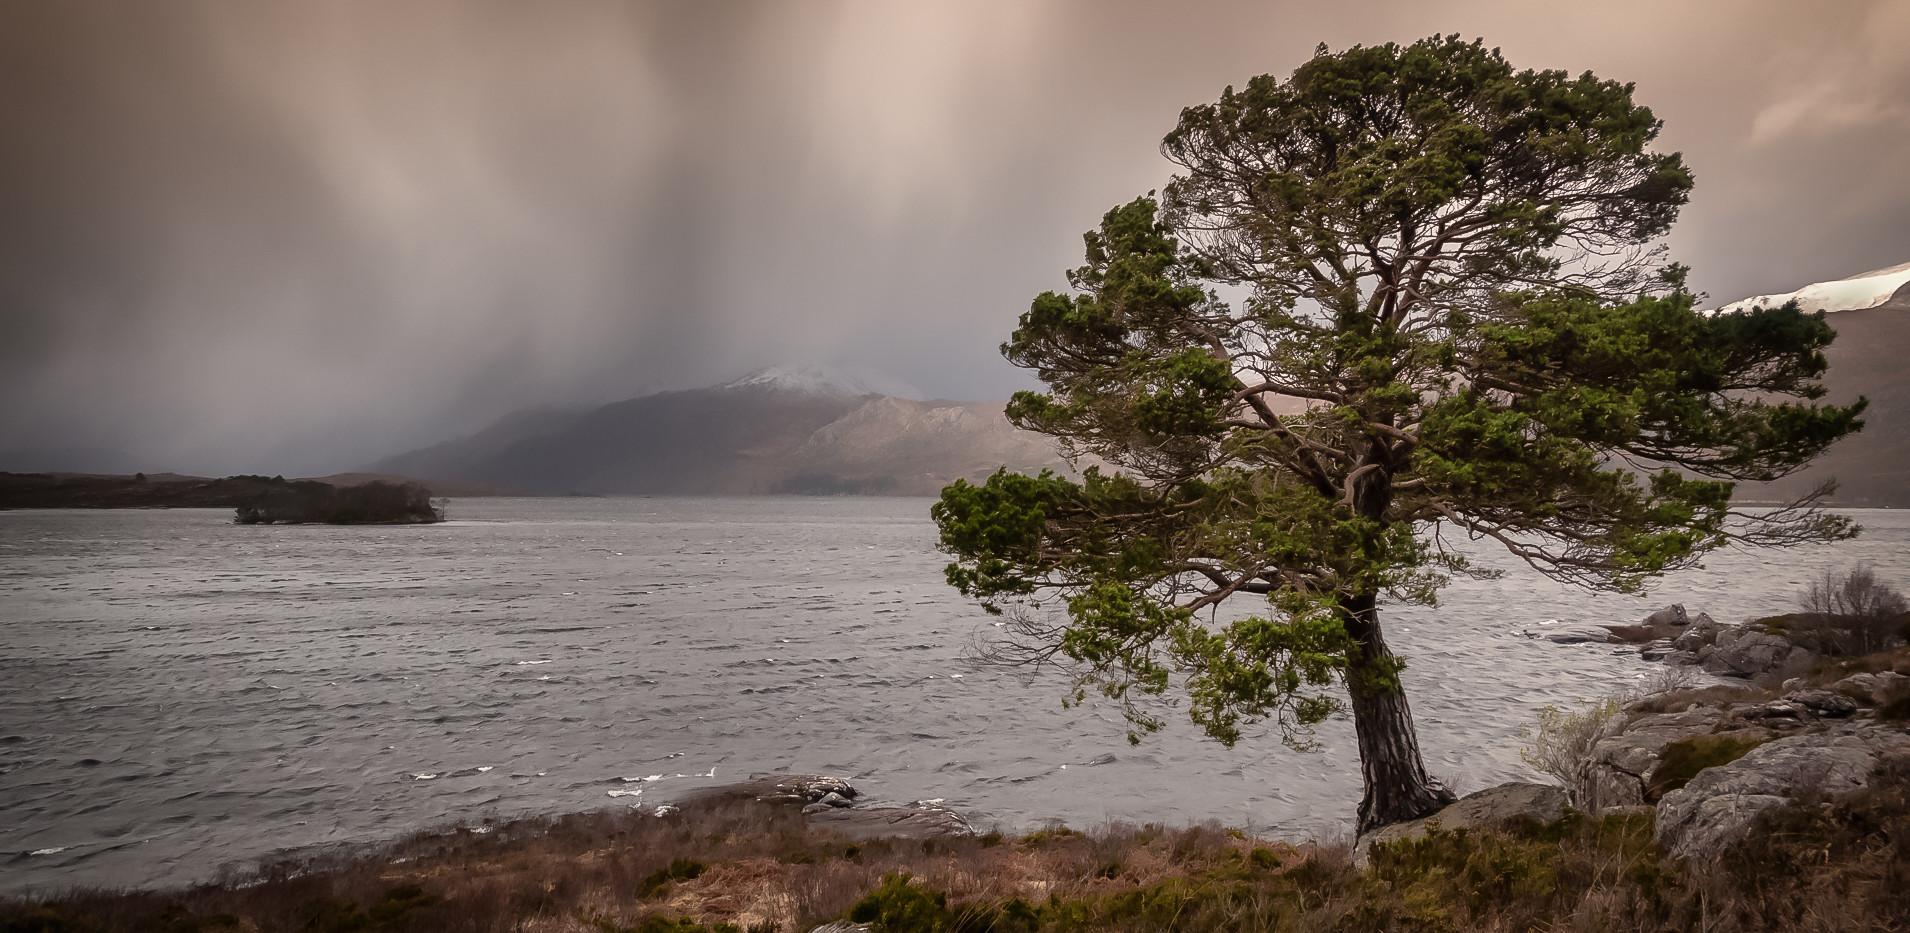 Approaching Squall - Andrew Daw